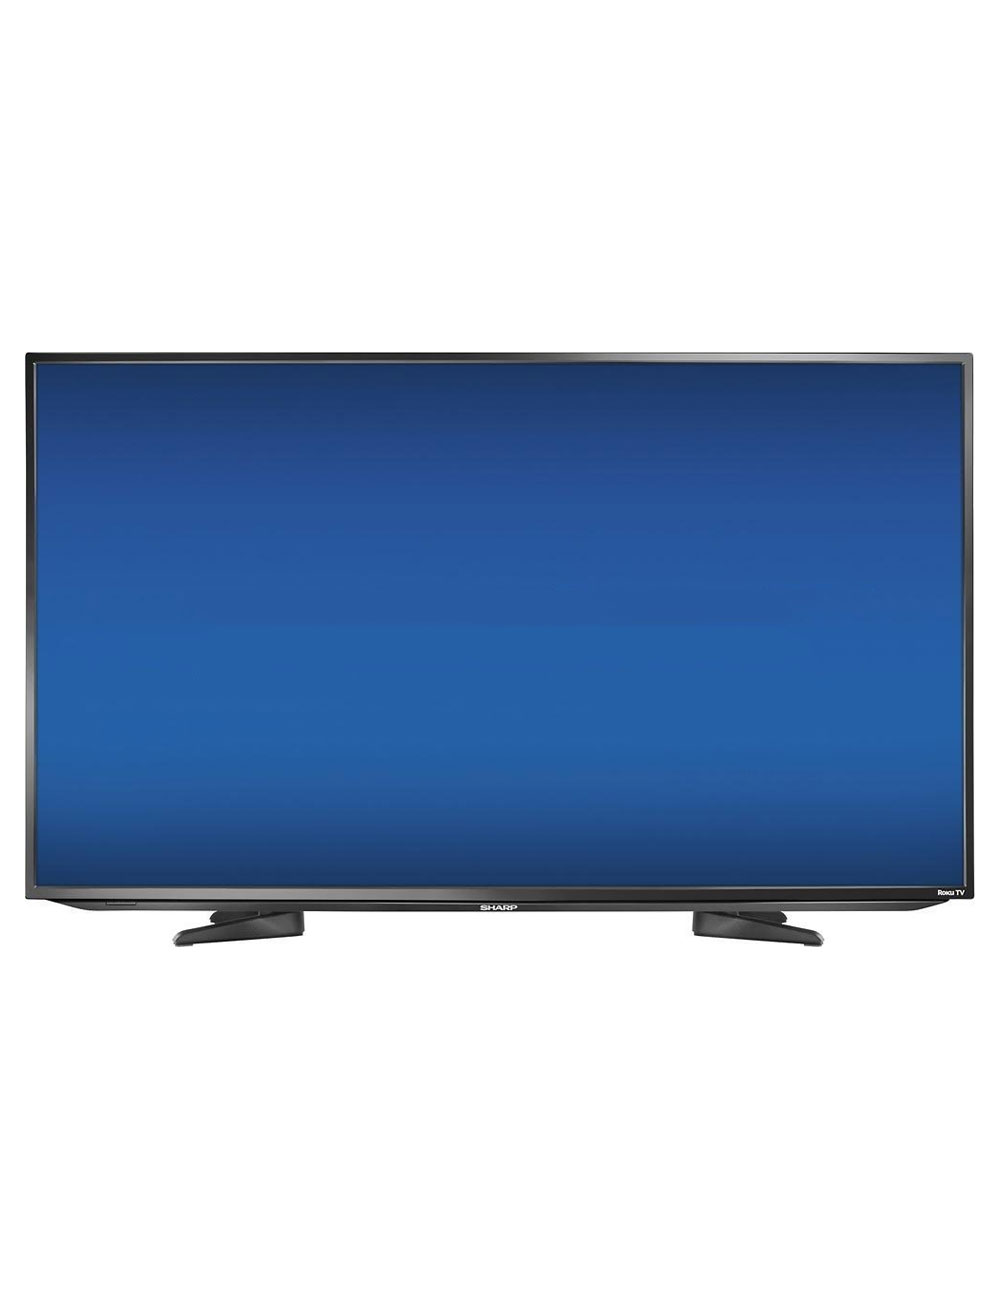 "Roku Box: 43"" Sharp Roku LED TV"